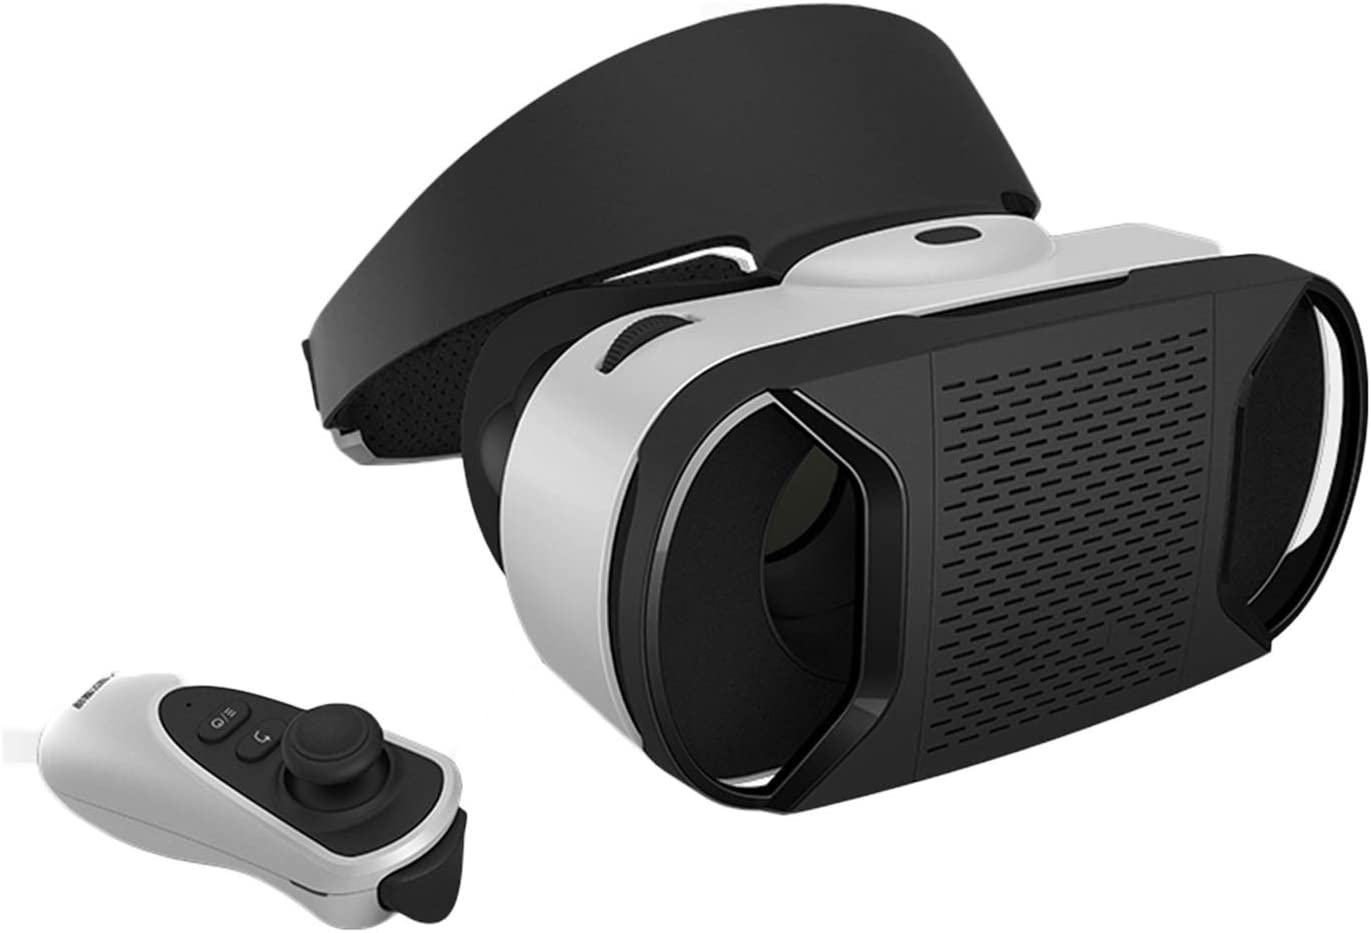 JYMENLING YANJINGYJ VR Headset, Reality Virtual Goggles, 3D VR Glasses, All-in-one VR Games Headset, Compatible with iPhone Android Phone Comfortable Compatible 4.7-5.5 (Color : Black)